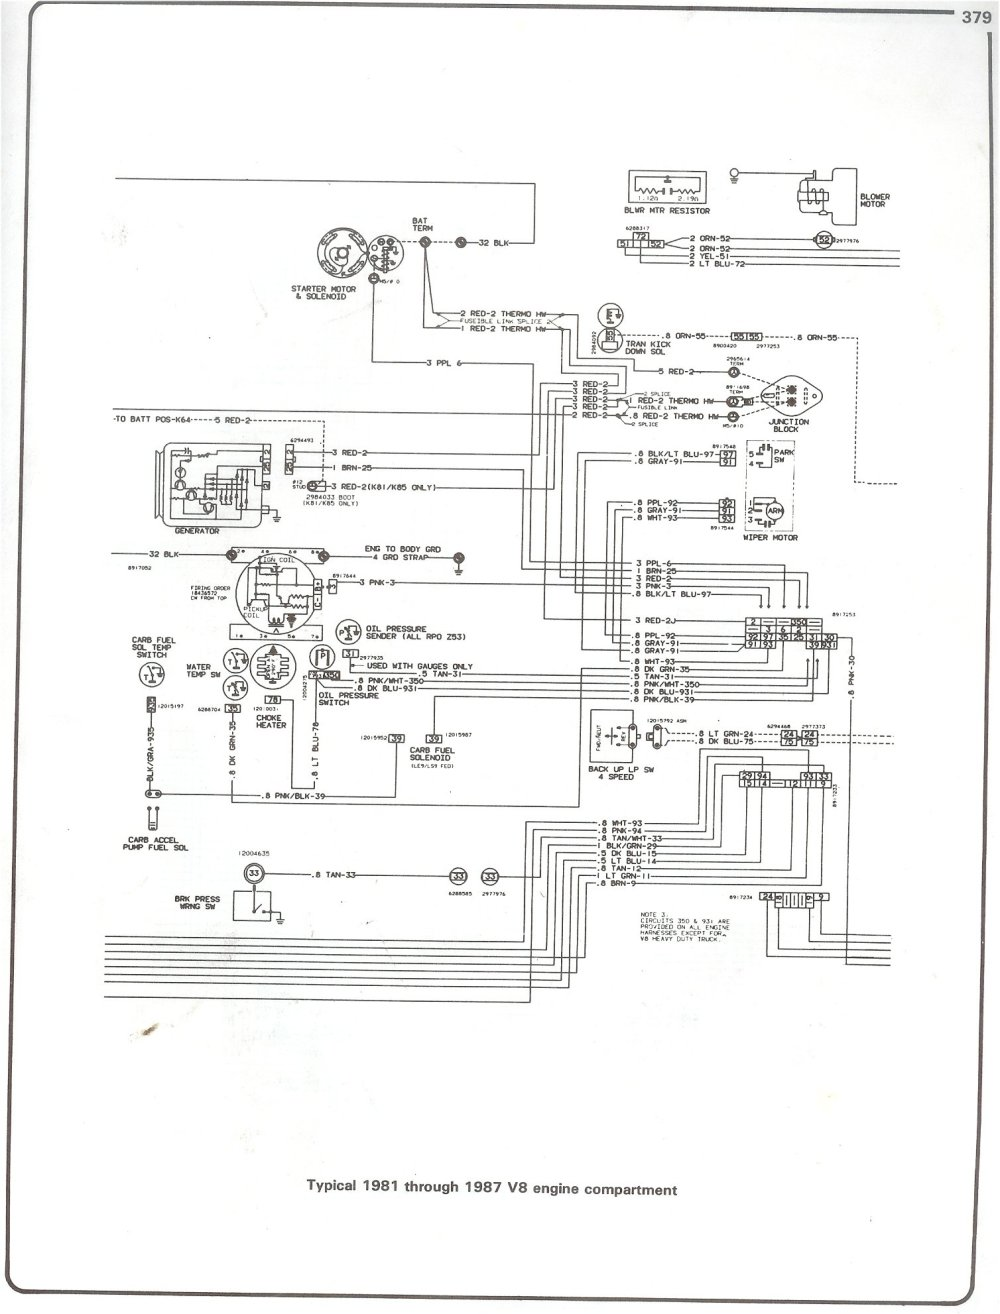 medium resolution of 1988 p30 wiring schematic v r